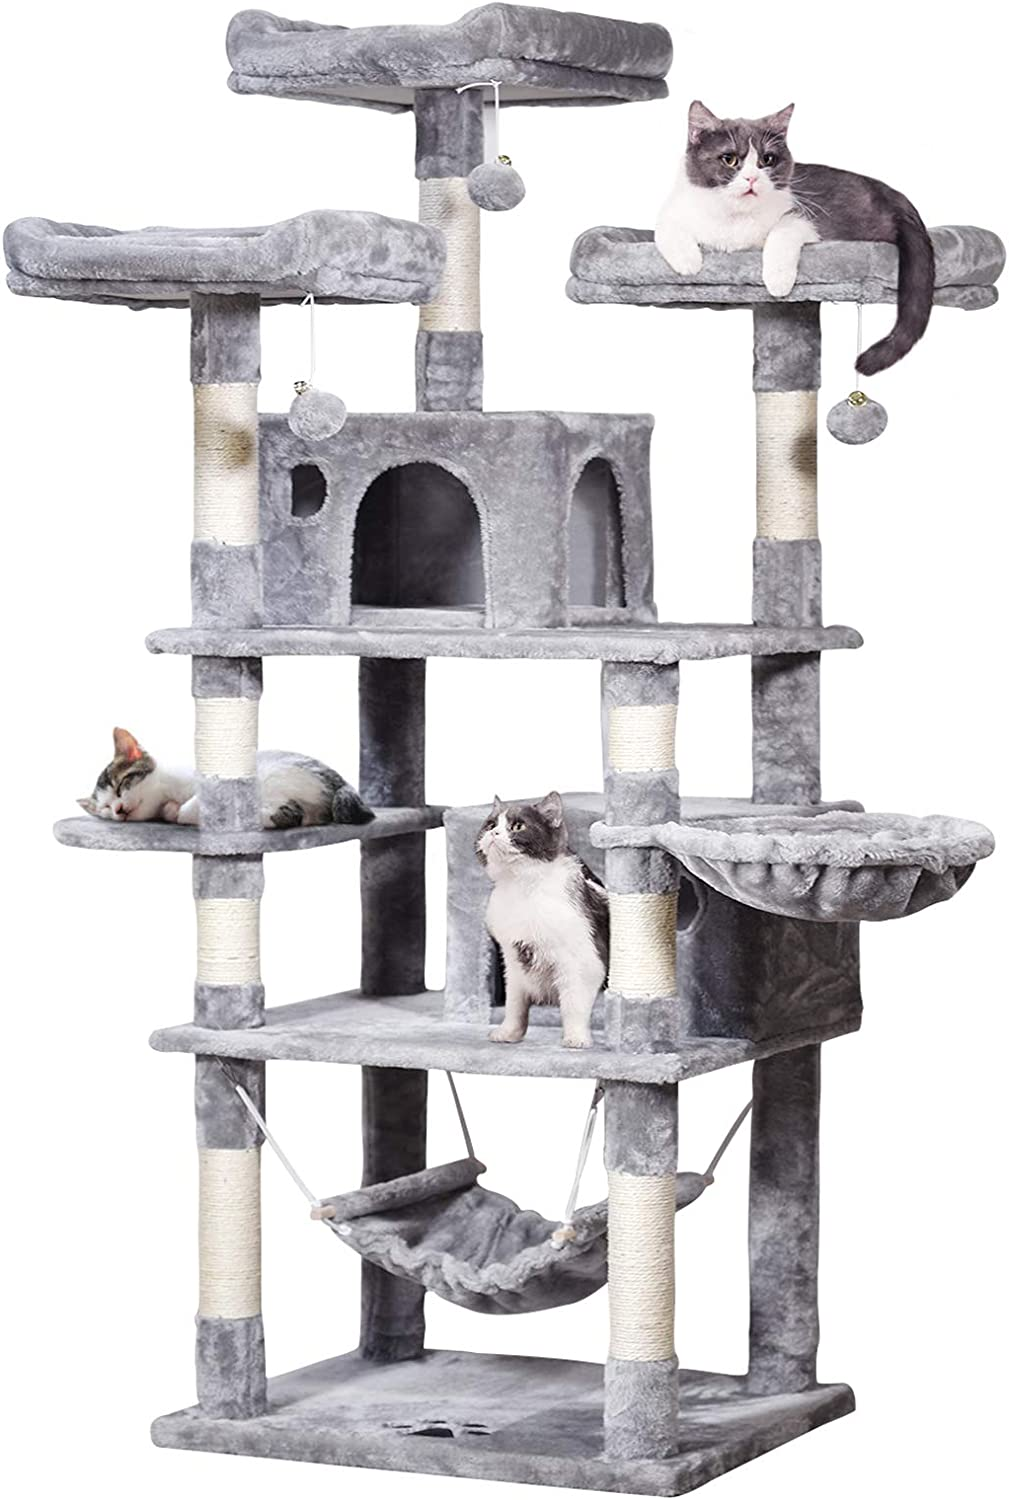 Mqforu Large Cat Tree Cat Tower With Sisal Scratching Posts Plush Perches Condos Hammock 170 Cm Cat Activity Centres Kittens Furniture Play House Light Grey Amazon Co Uk Pet Supplies